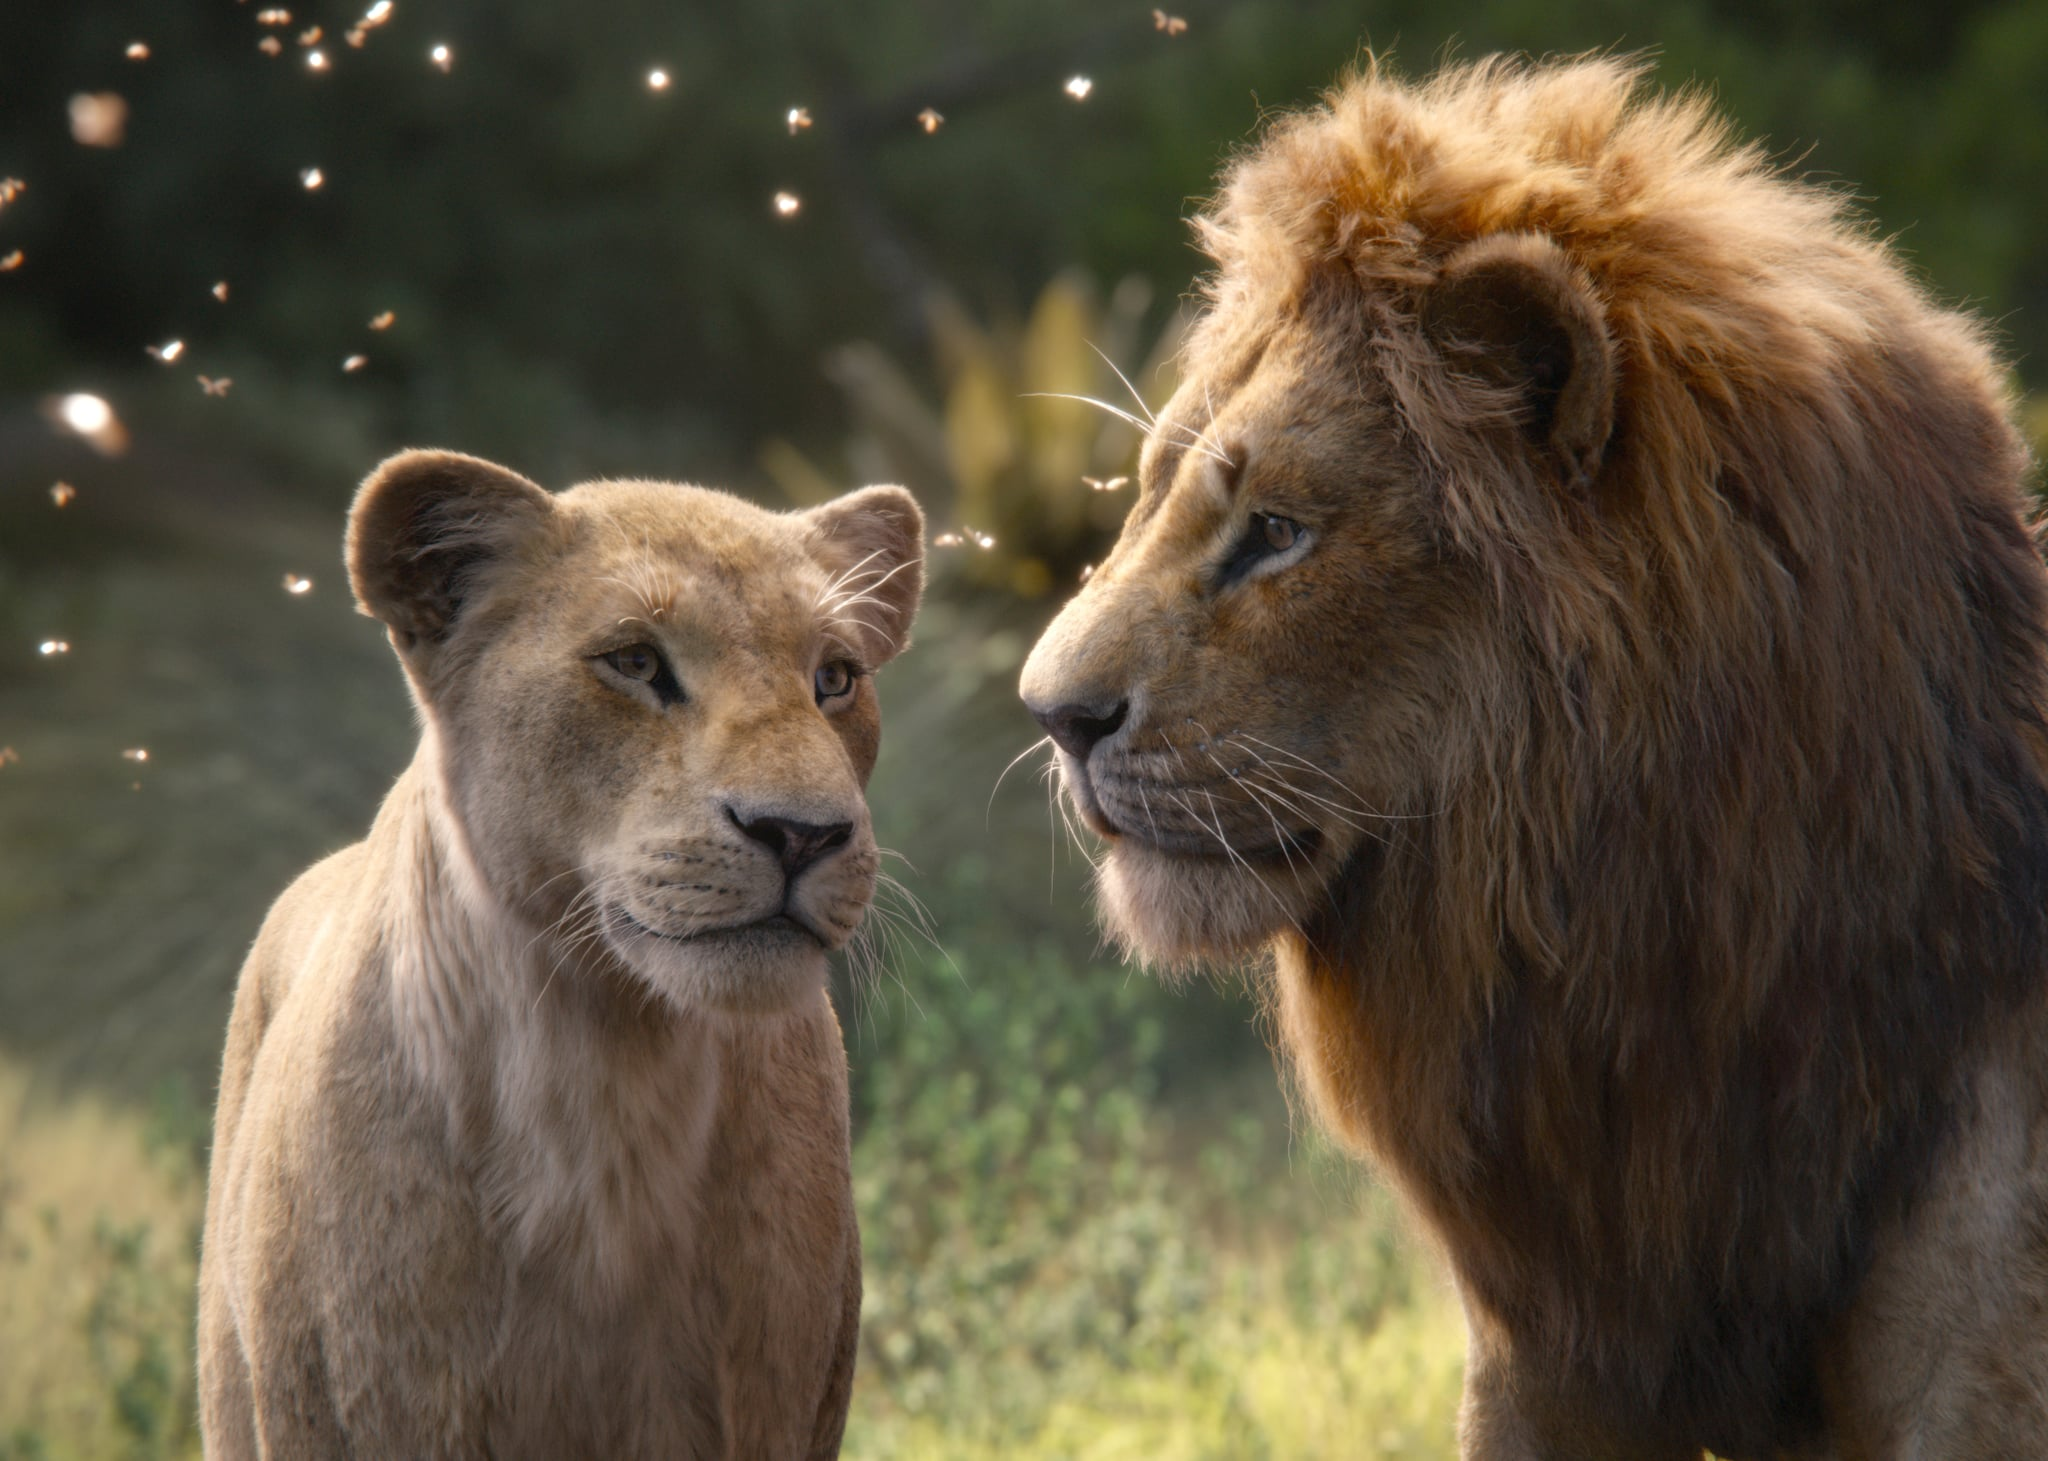 THE LION KING, from left: Nala (voice: Beyonce Knowles-Carter), Mufasa (voice: James Earl Jones), 2019.  Walt Disney Studios Motion Pictures / courtesy Everett Collection